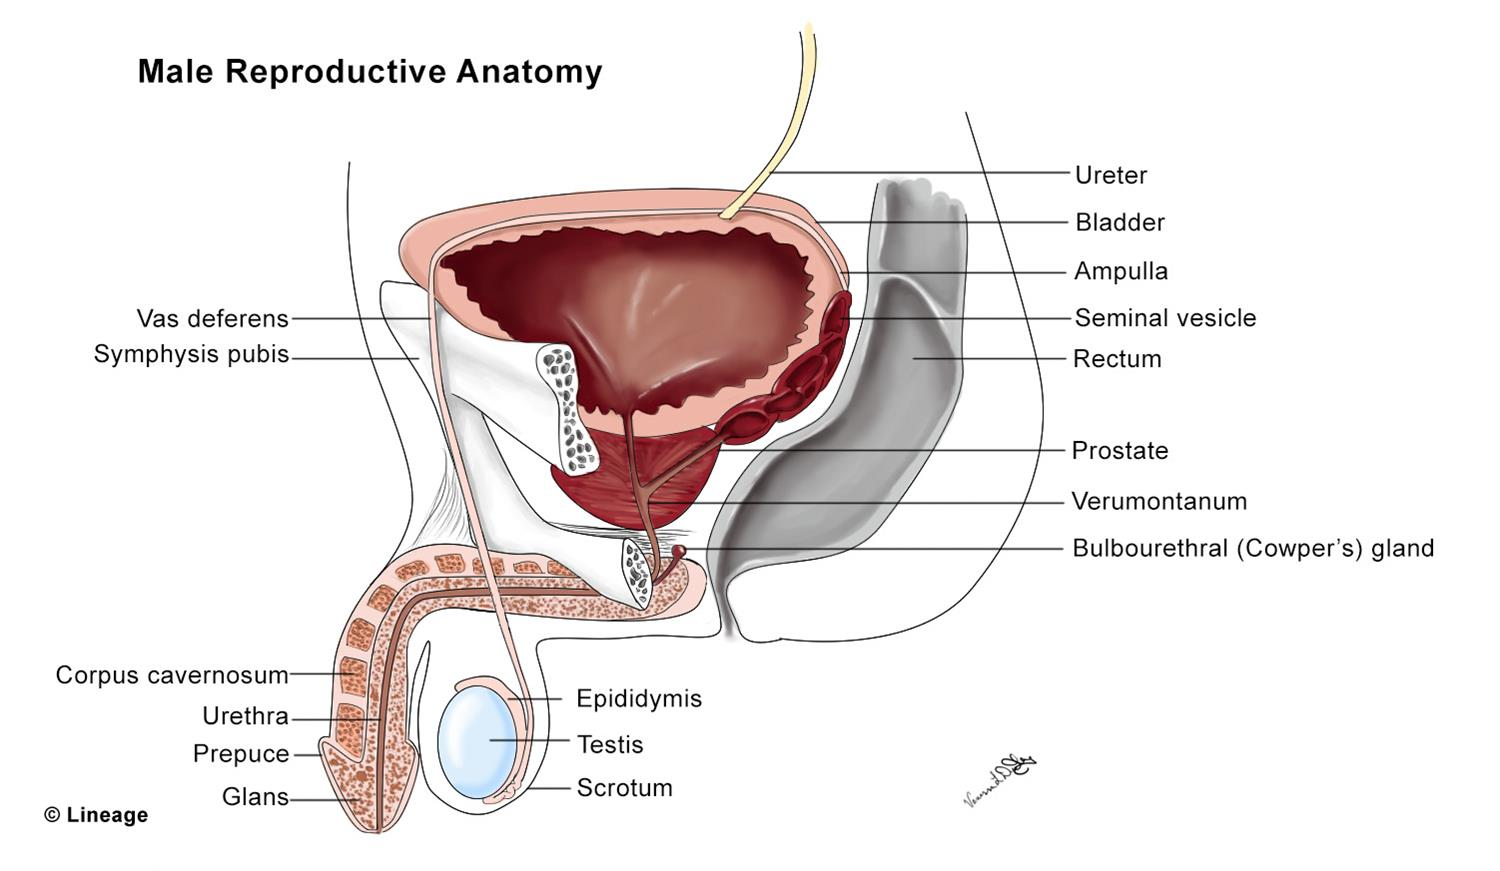 Male Reproductive Anatomy Reproductive Medbullets Step 1